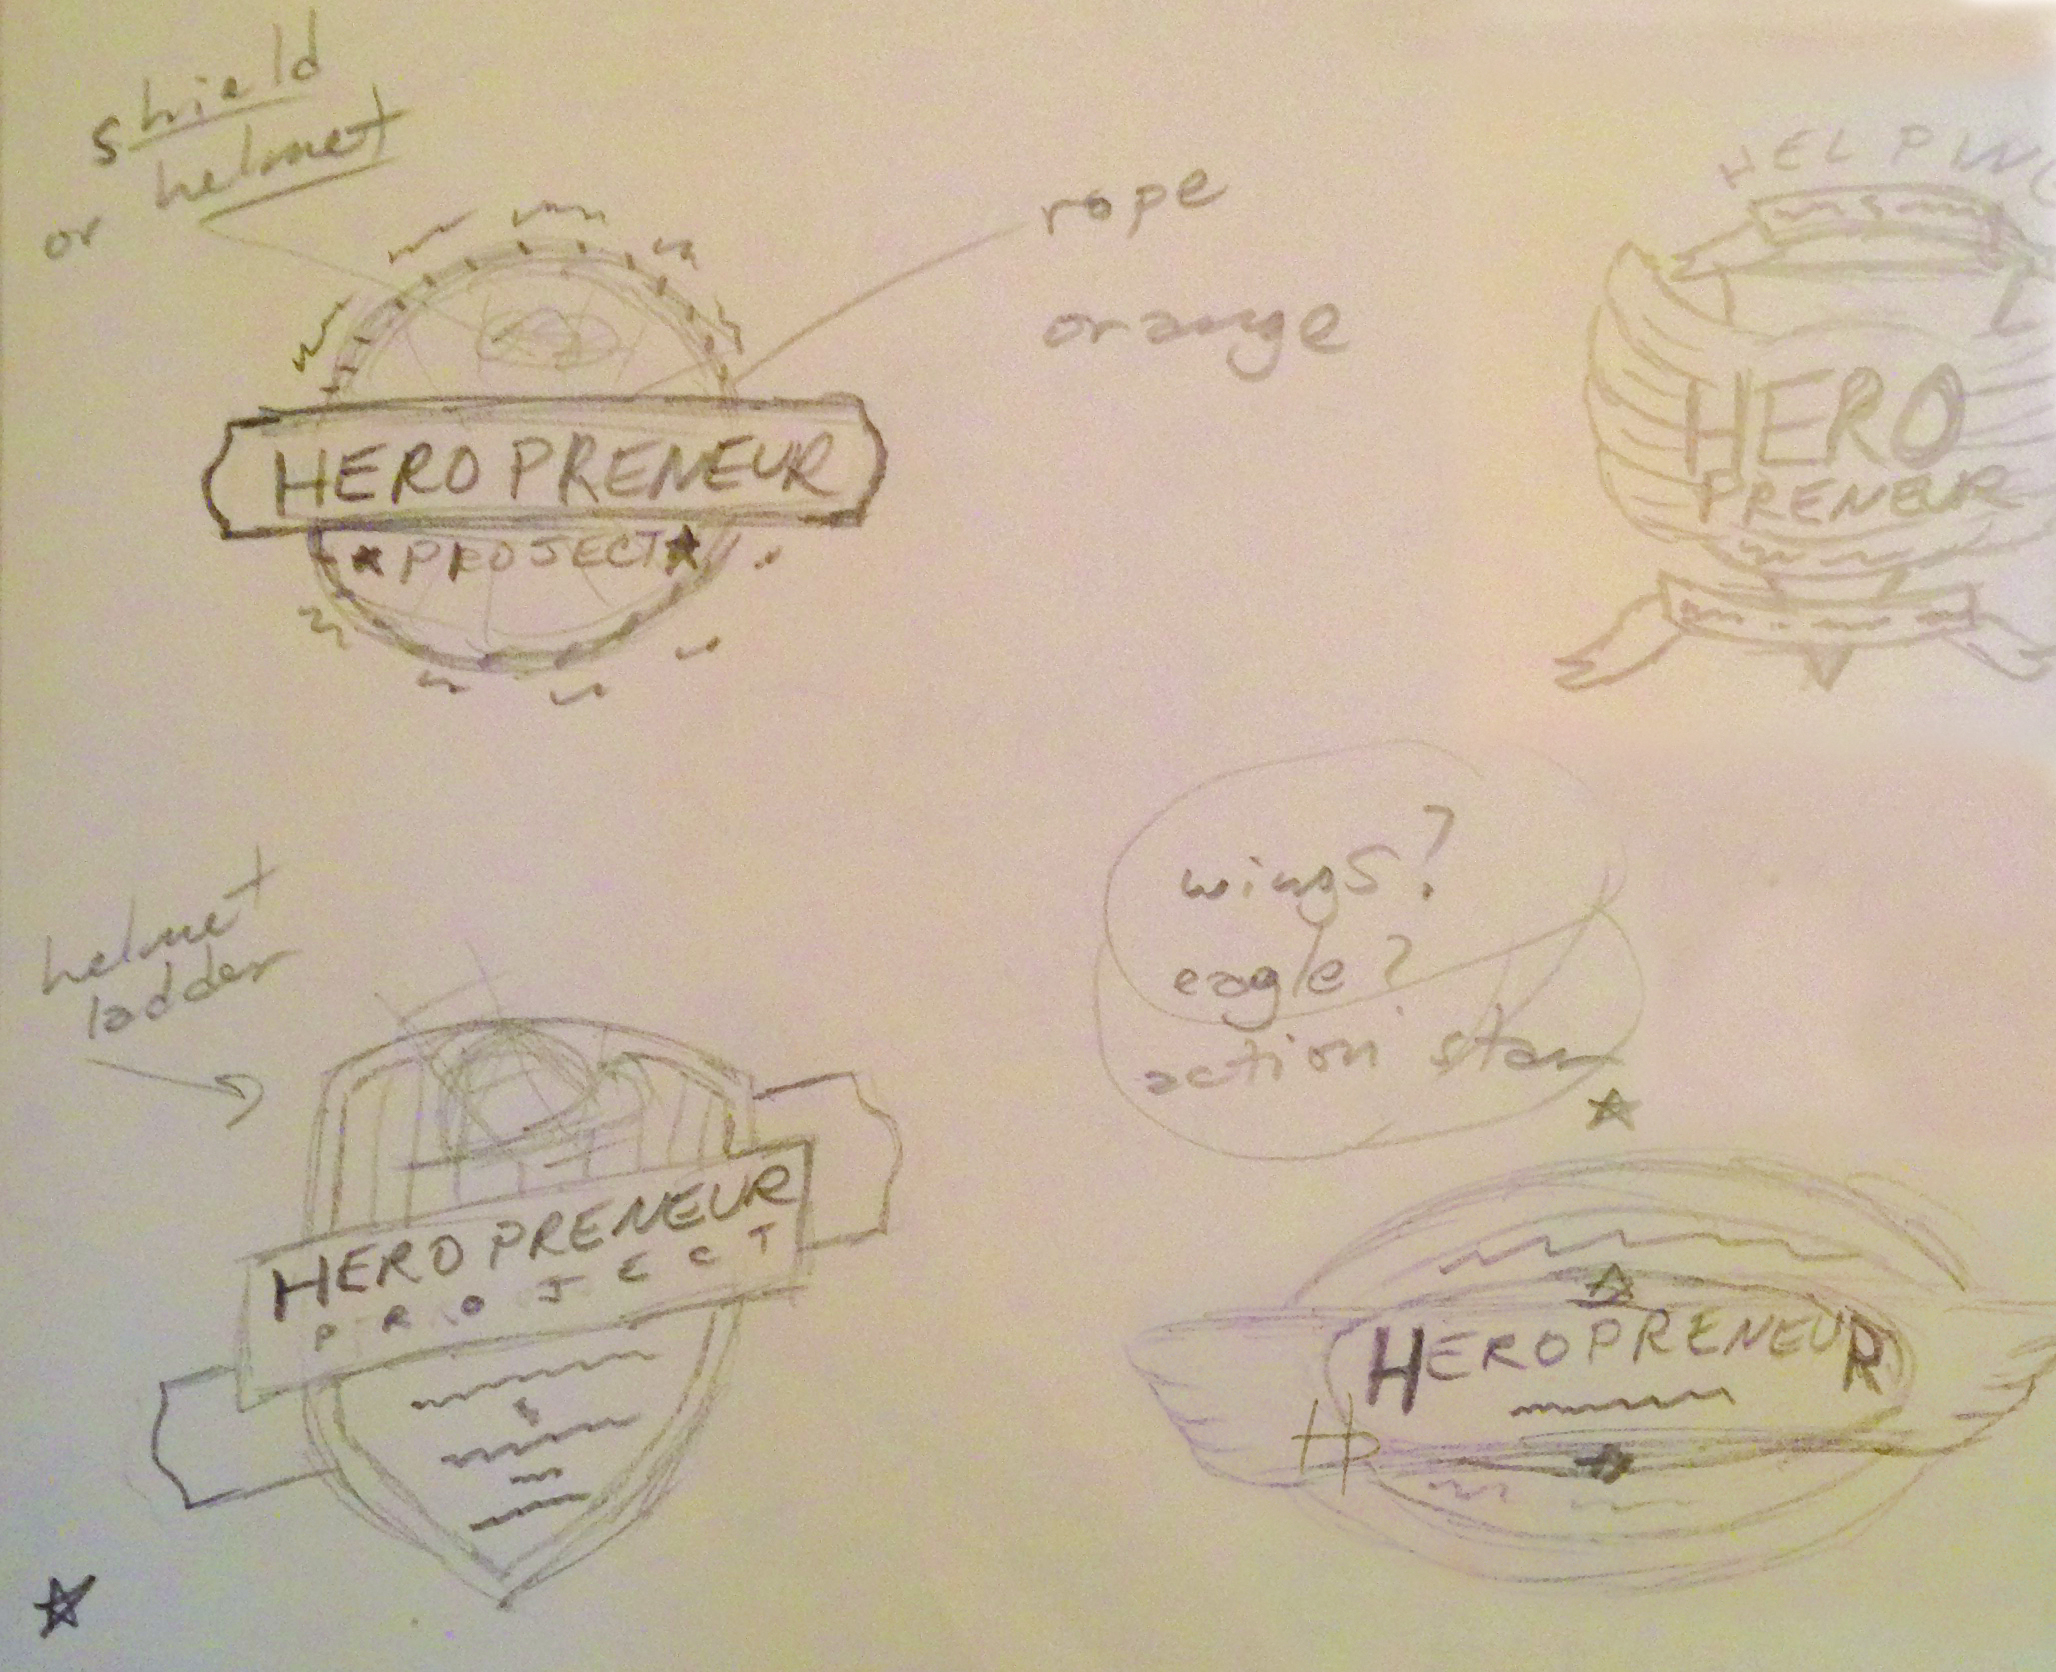 This image is a sneak peek at my sketch pad during the brainstorming and experimental phase of the logo creation. Several of these marks were later taken to the computer to be executed in Adobe Illustrator.